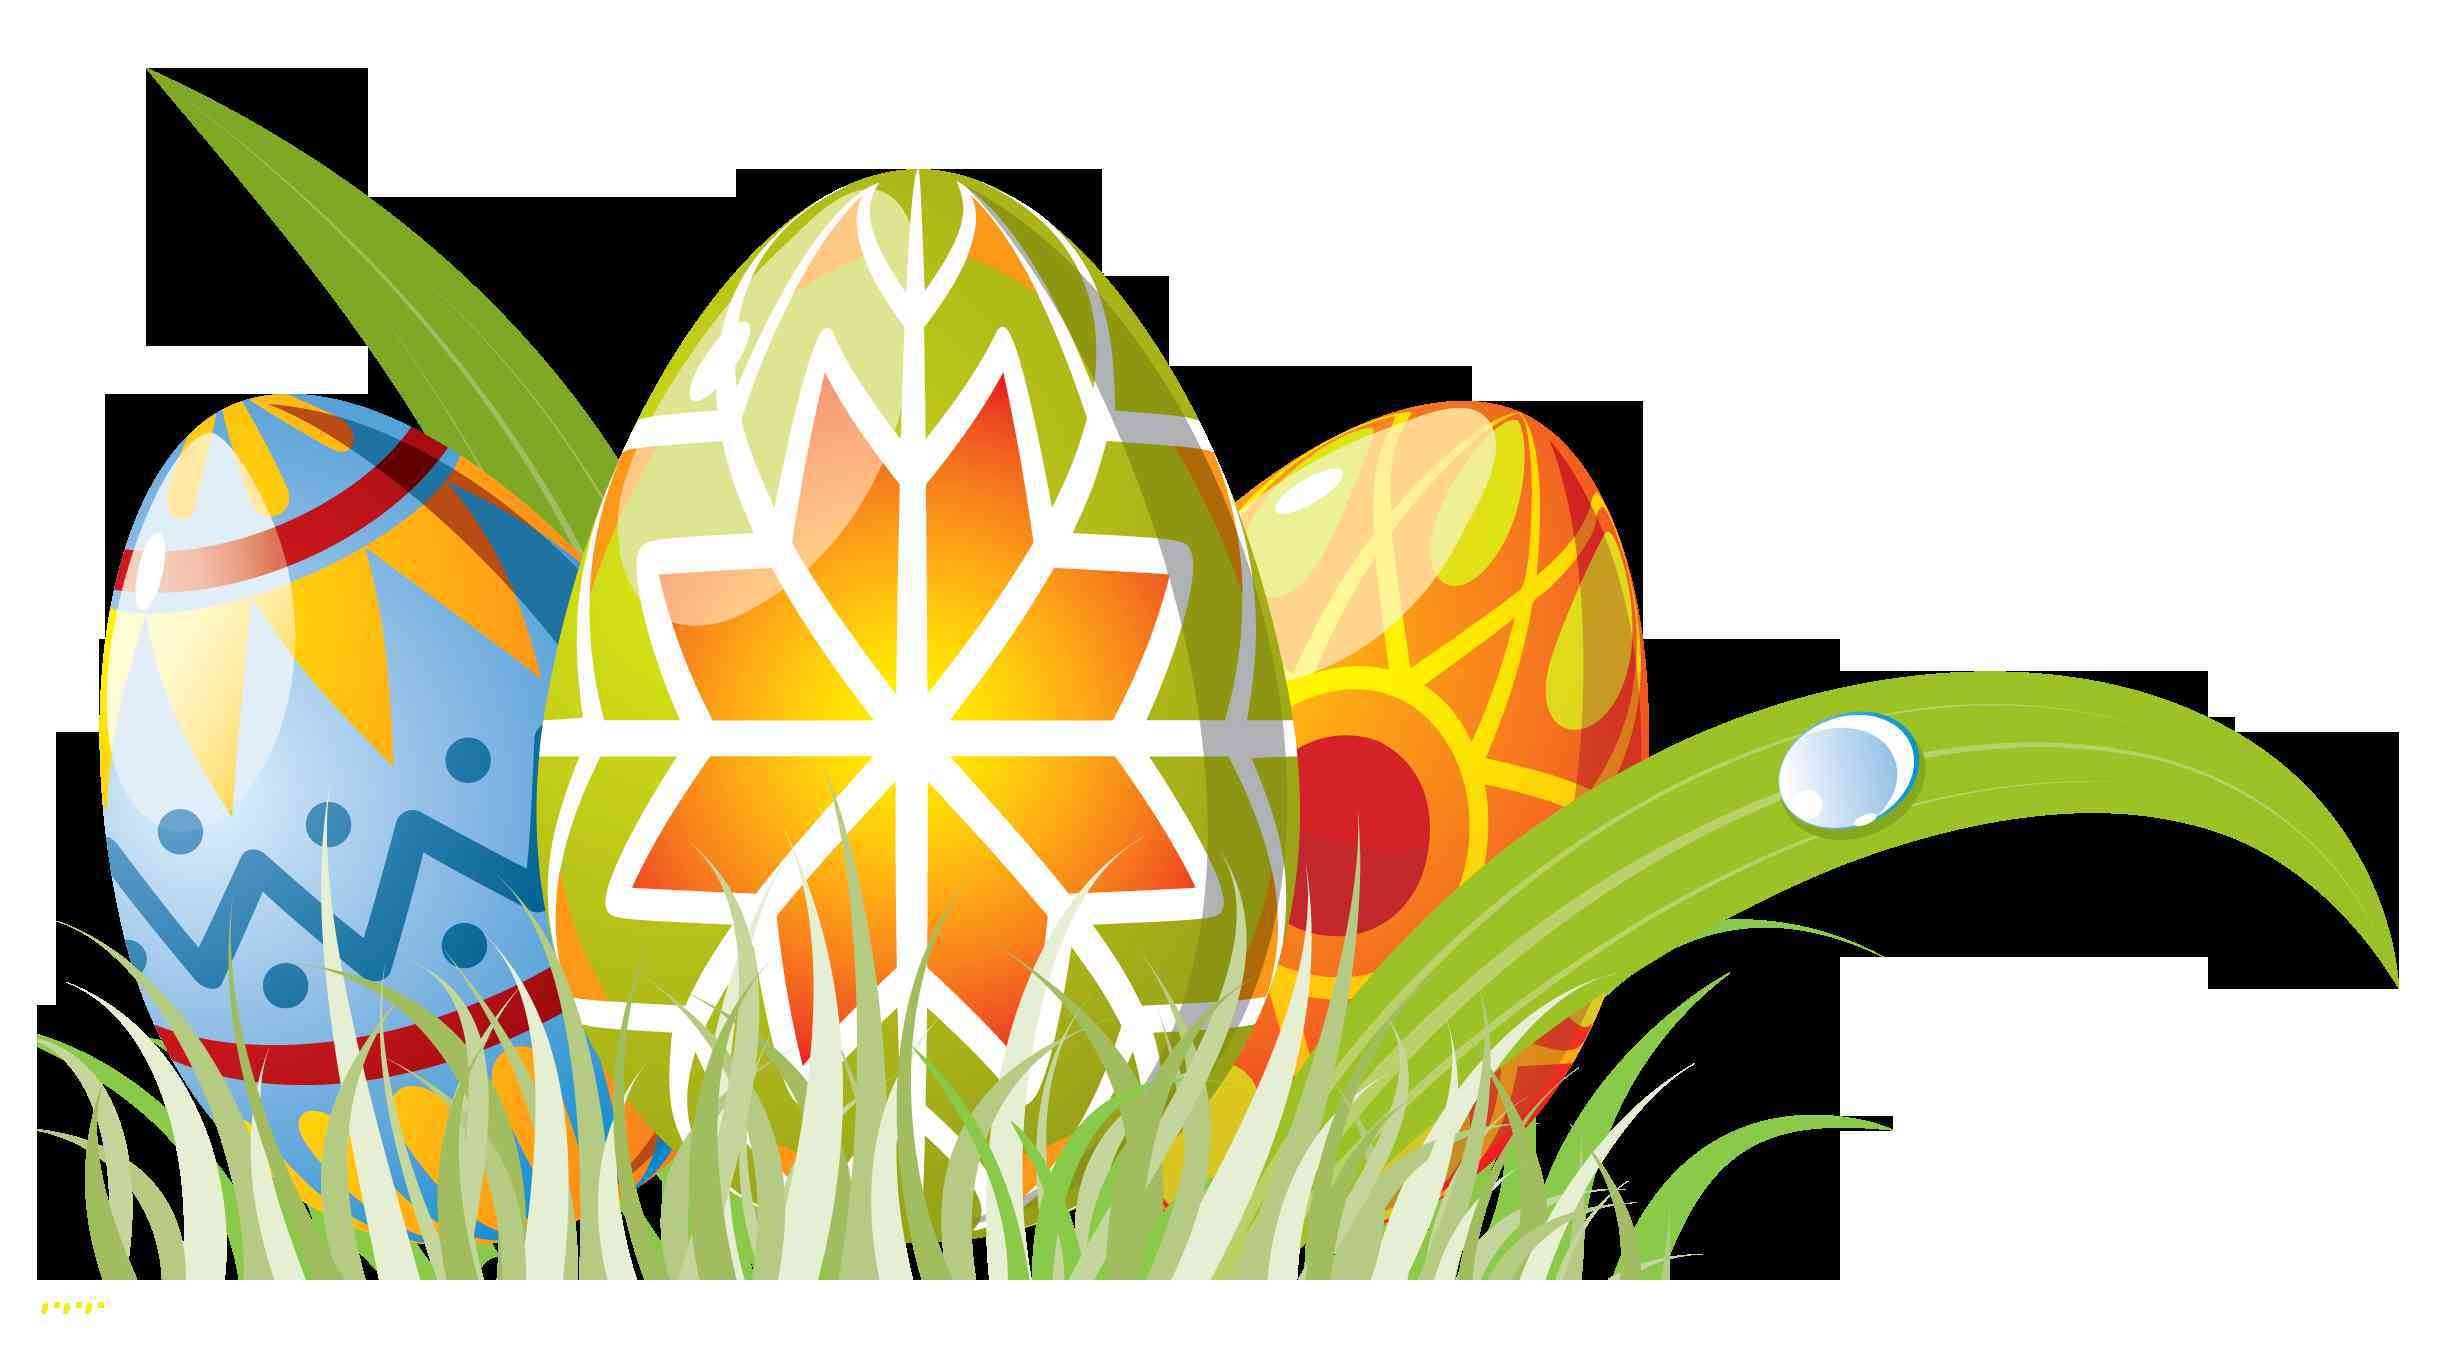 2448x1357 Easter Eggs In Grass Clip Art Luxury Easter Eggs Grass Clip Art